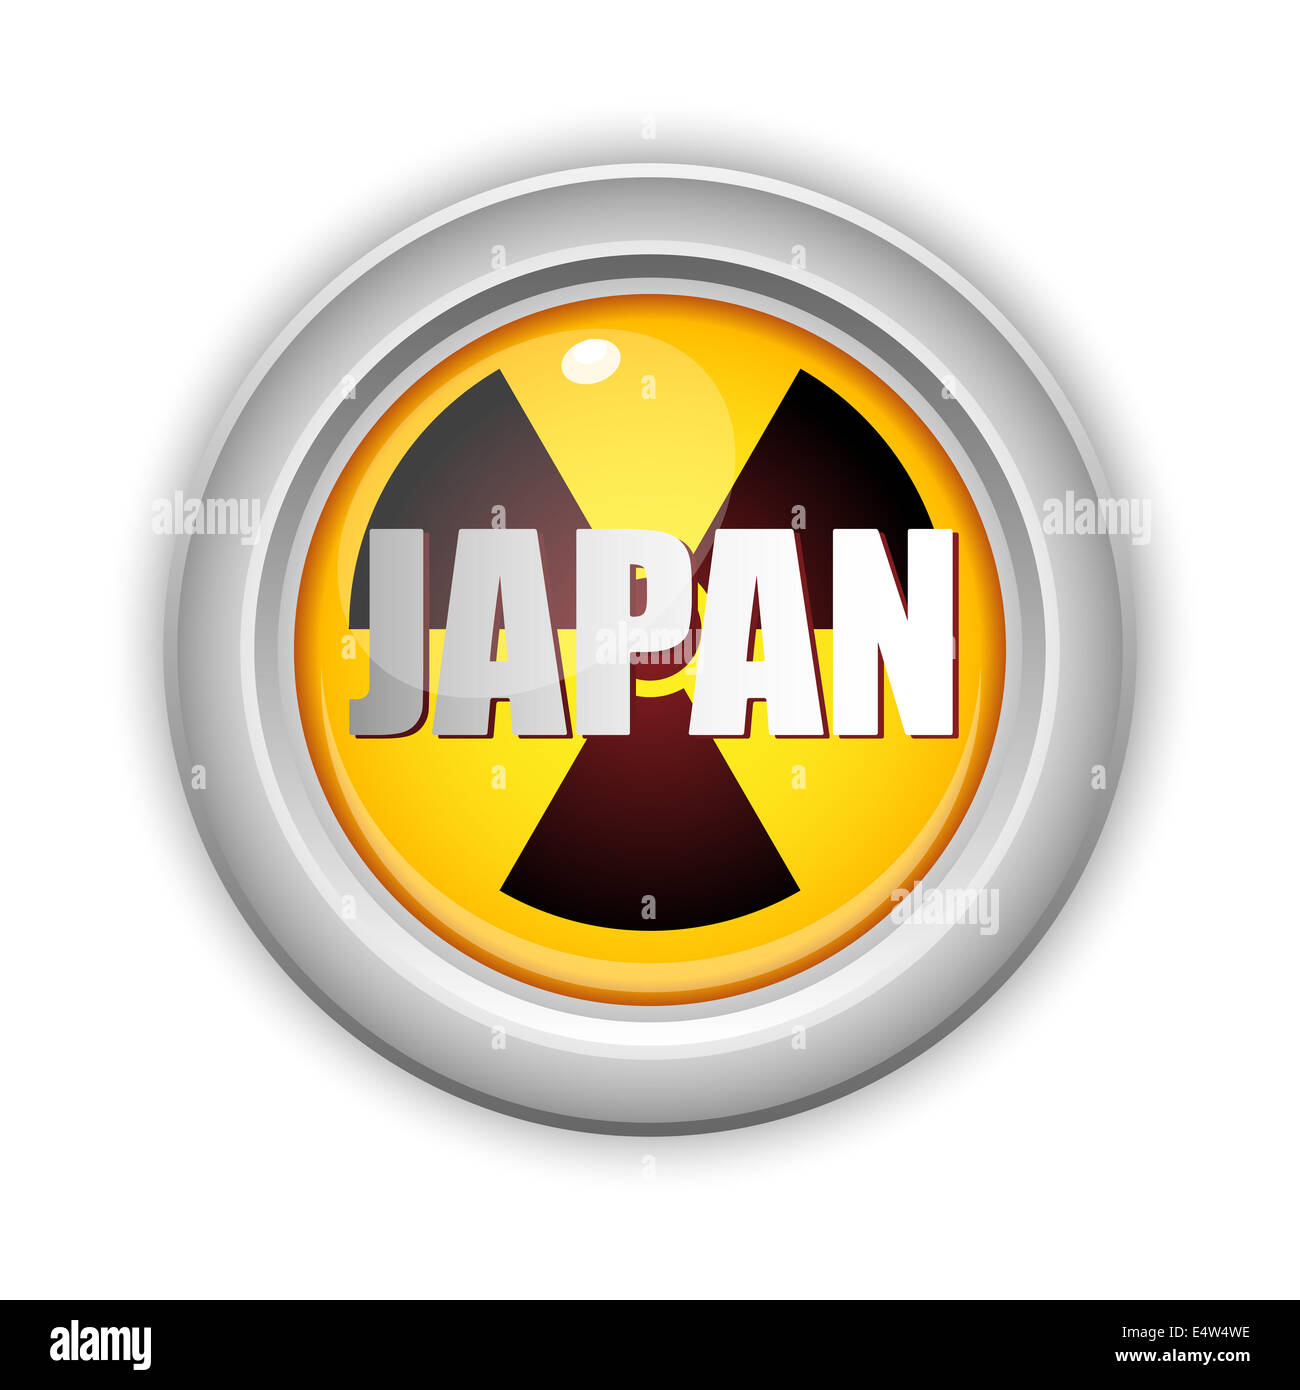 Japan Nuclear Disaster Yellow Button - Stock Image